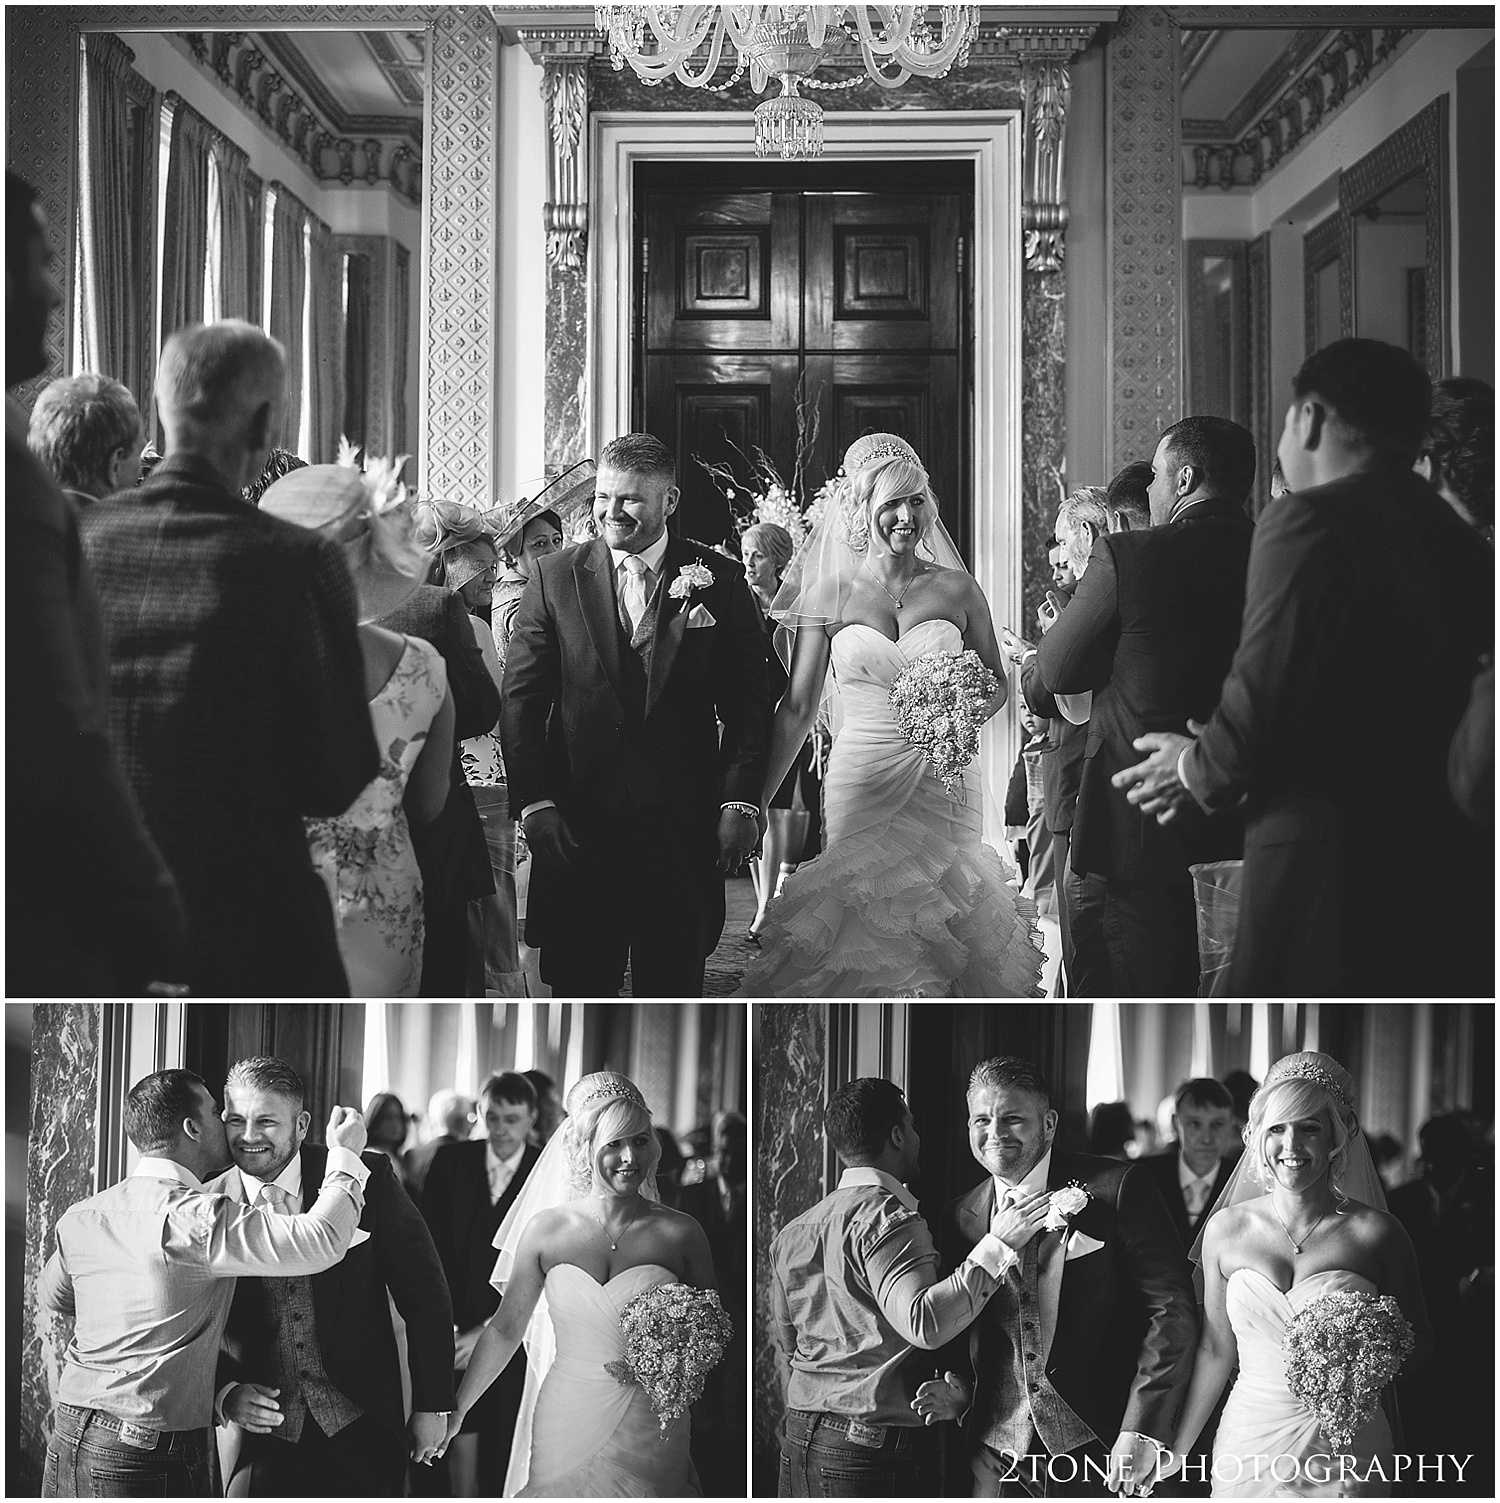 Wynyard Hall wedding by www.2tonephotography.co.uk 051.jpg